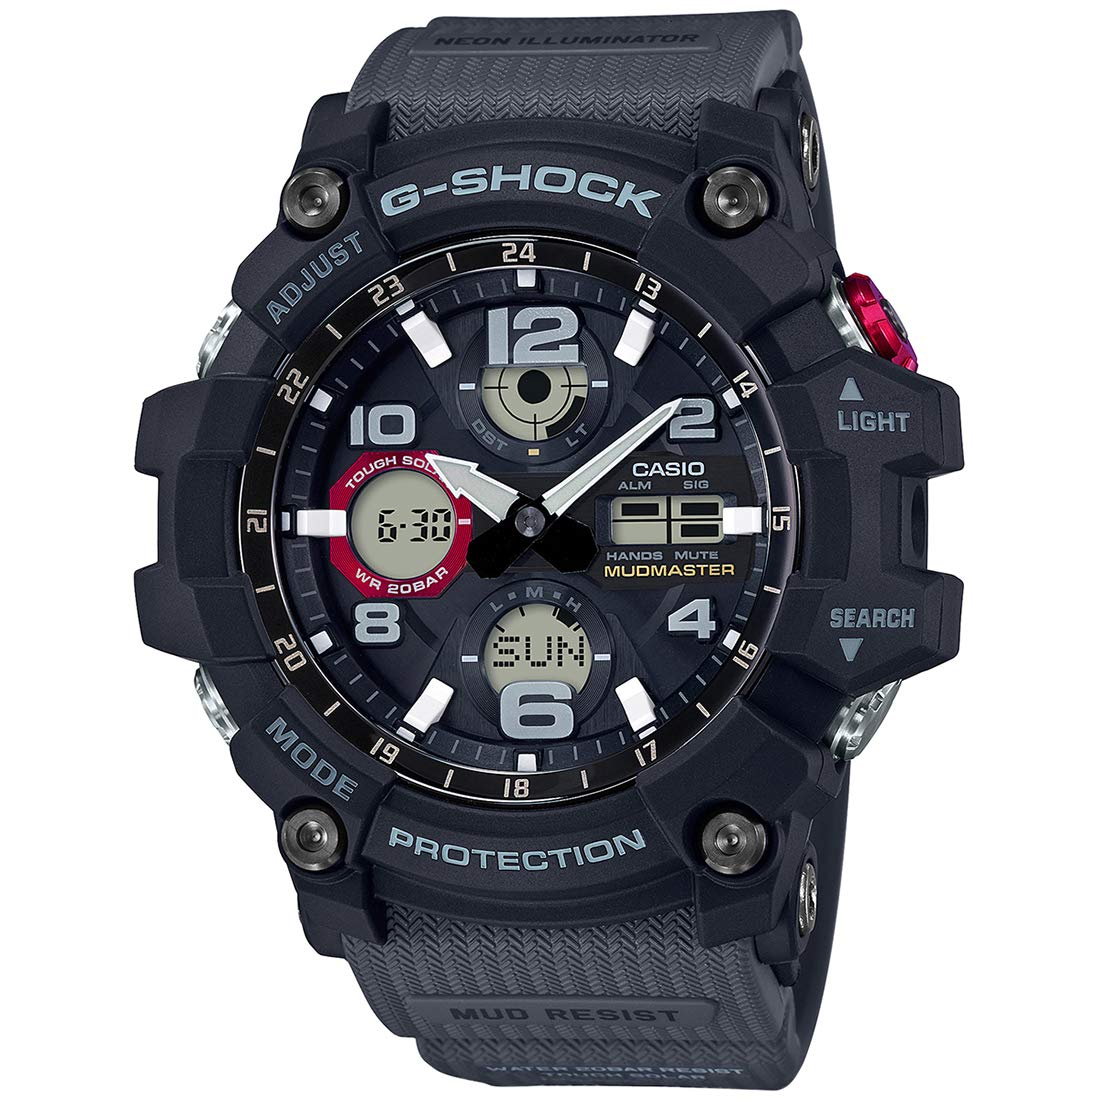 29799846eb4d Buy Casio G-Shock Analog-Digital Black Dial Men's Watch - GSG-100-1A8DR  (G832) Online at Low Prices in India - Amazon.in